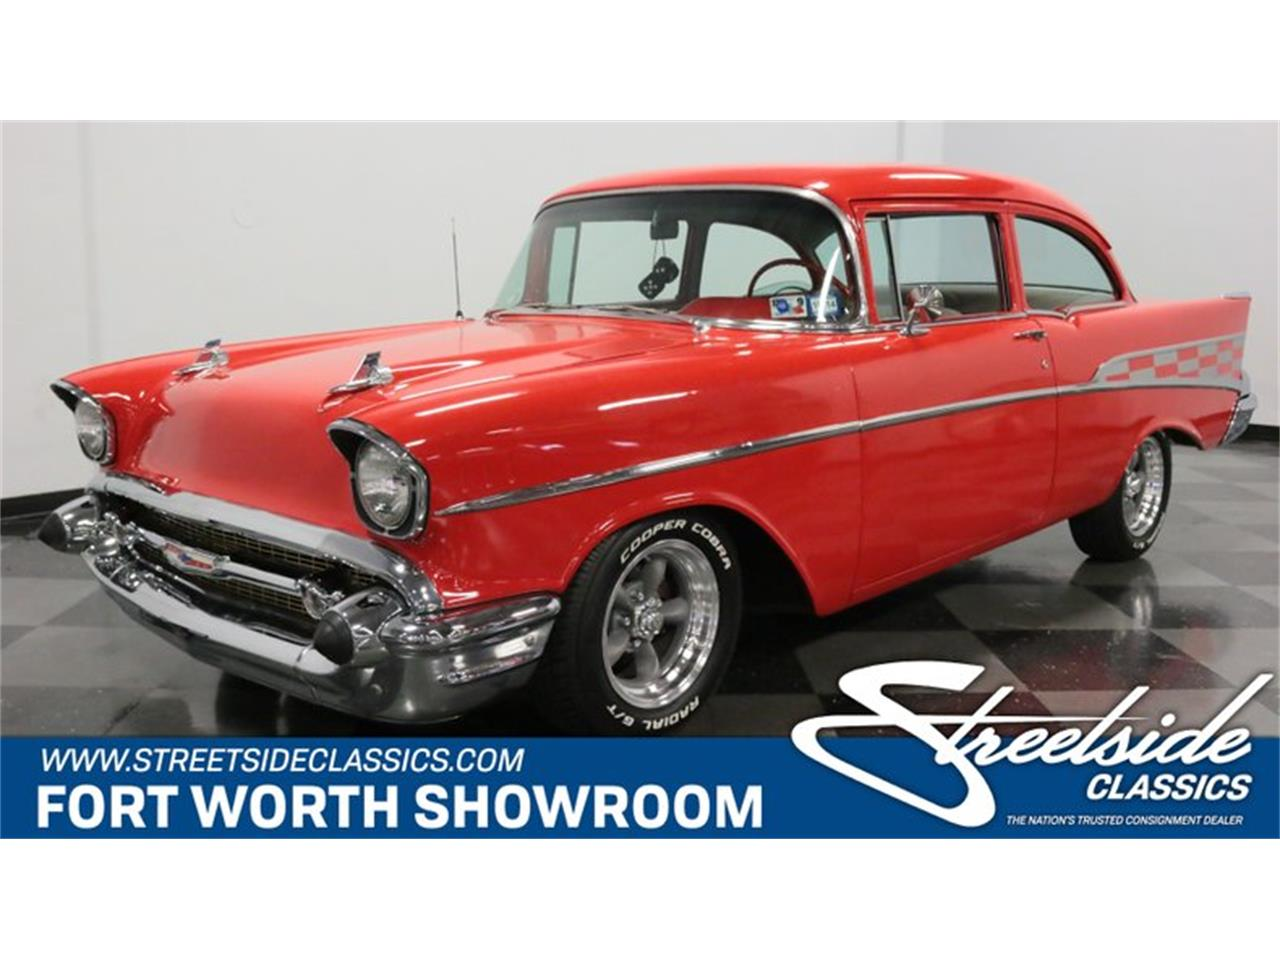 For Sale 1957 Chevrolet 210 In Ft Worth Texas